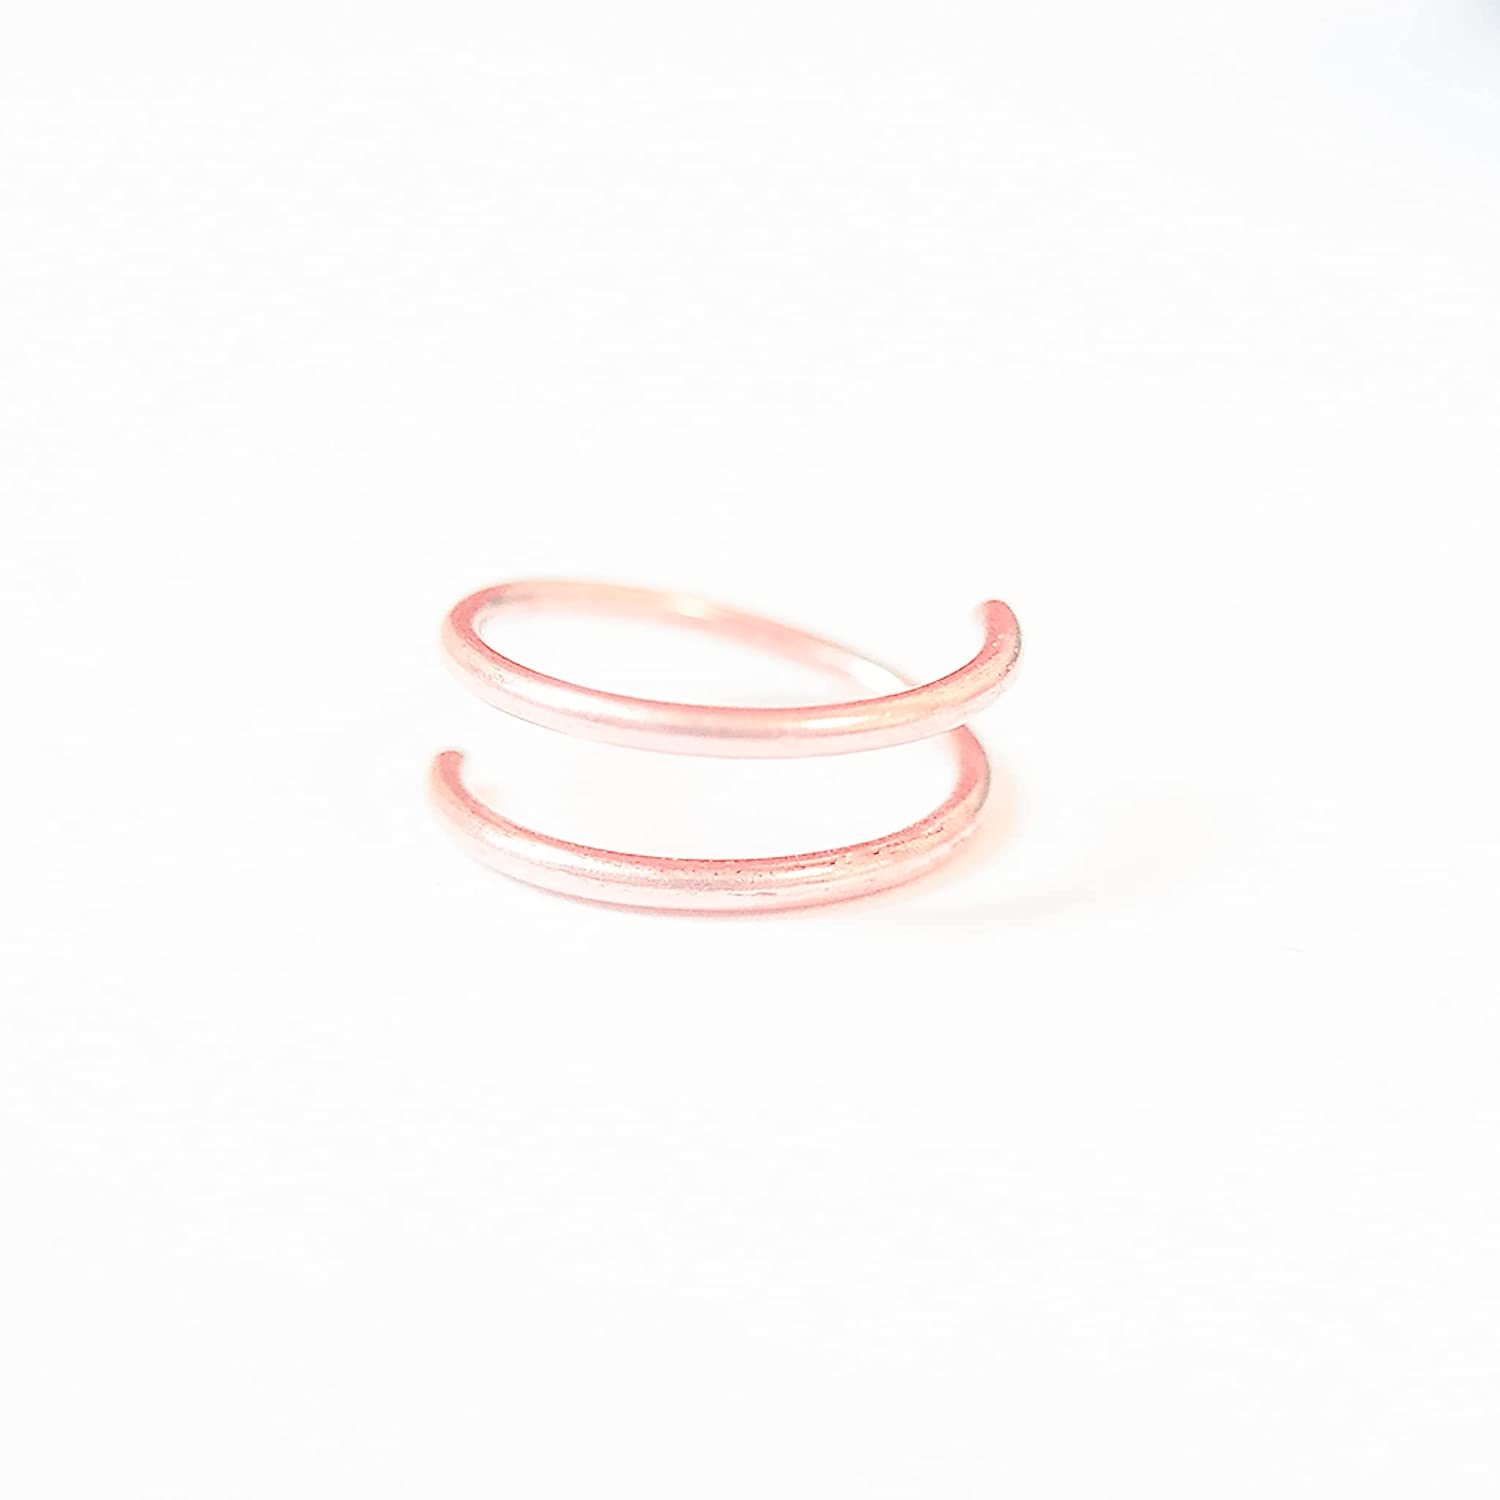 Super special price Double Hoop Nose Ring Pierced-Rose Gold Super sale period limited Single Piercin